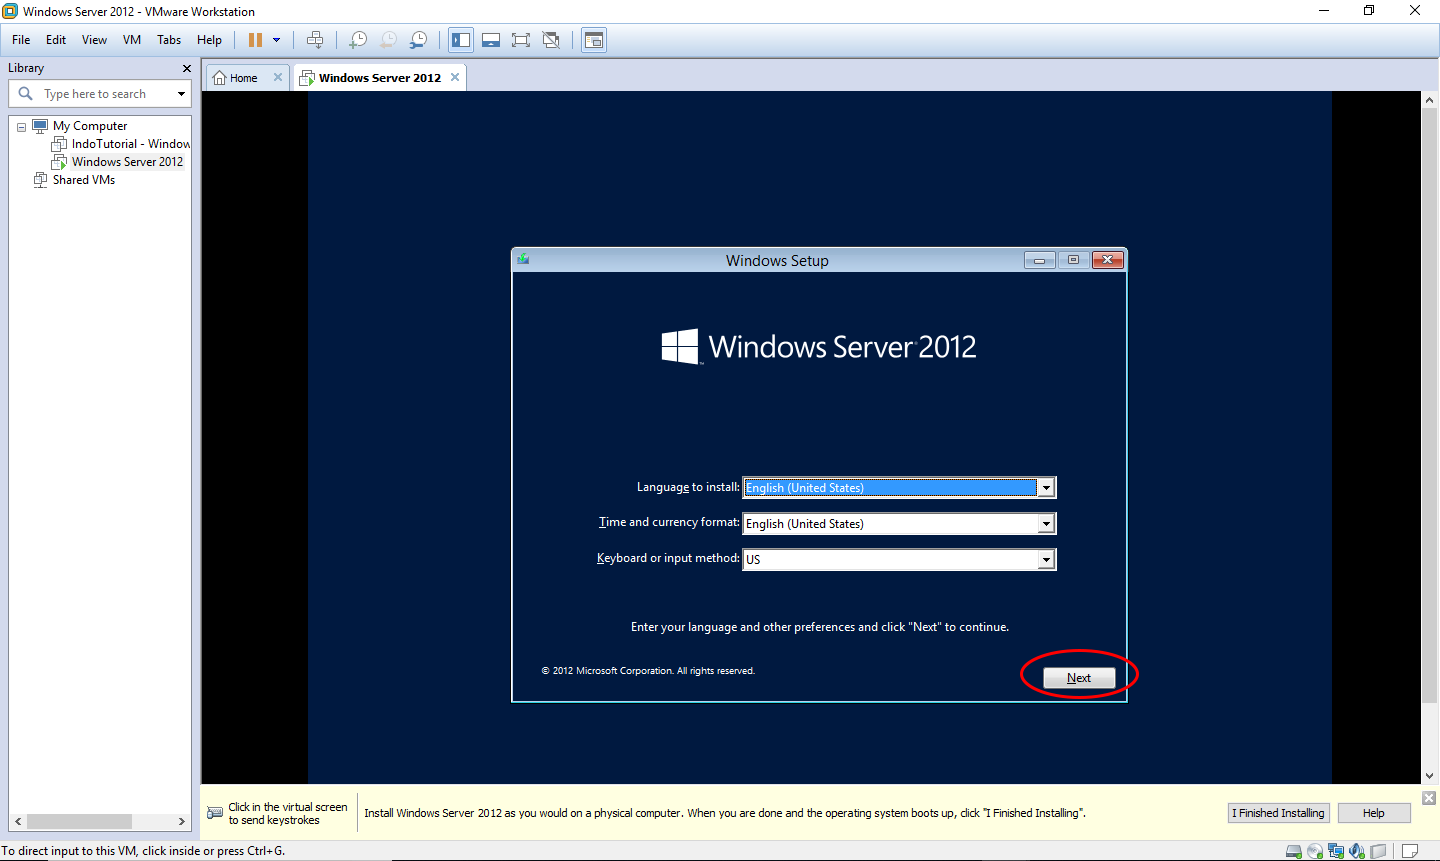 Cara install Windows Server 2012 di VMware workstation 12 Pro - Install Win by IndoTutorial